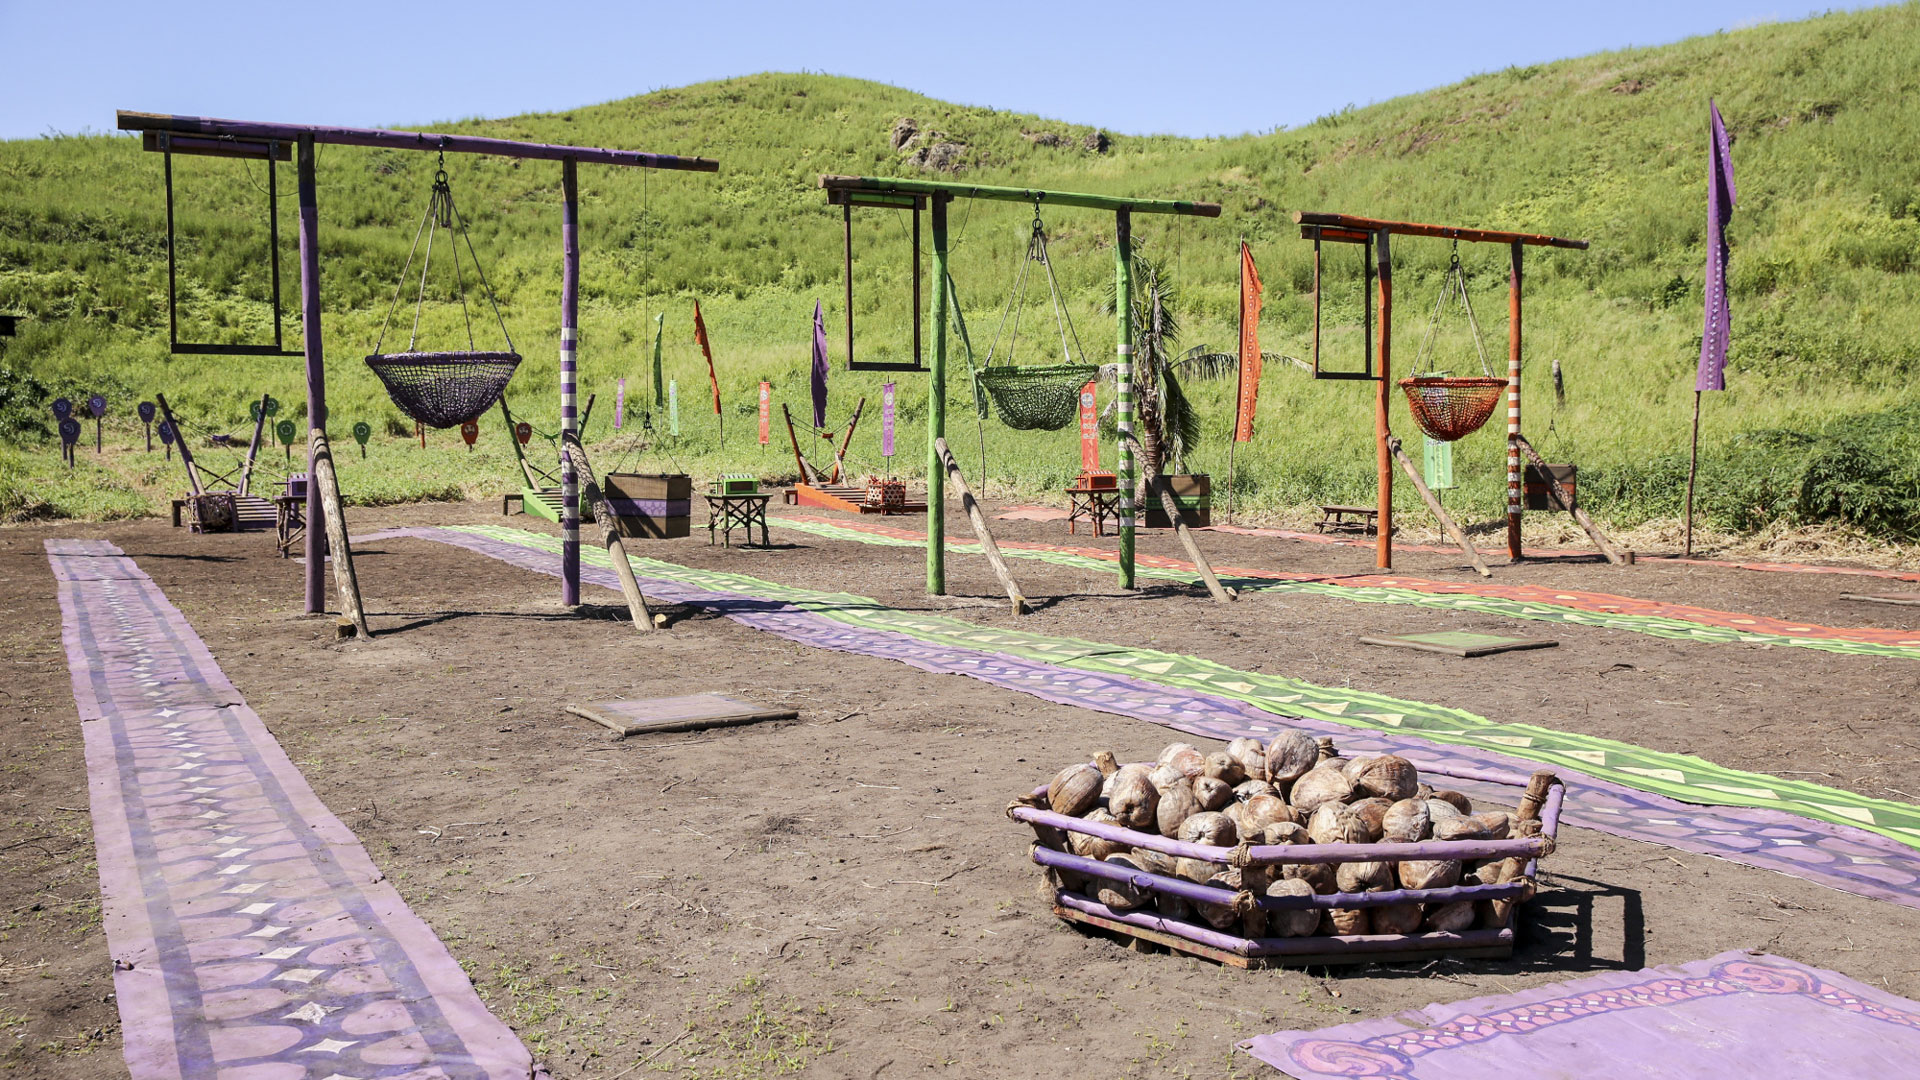 The scene is set for the next Immunity Challenge.